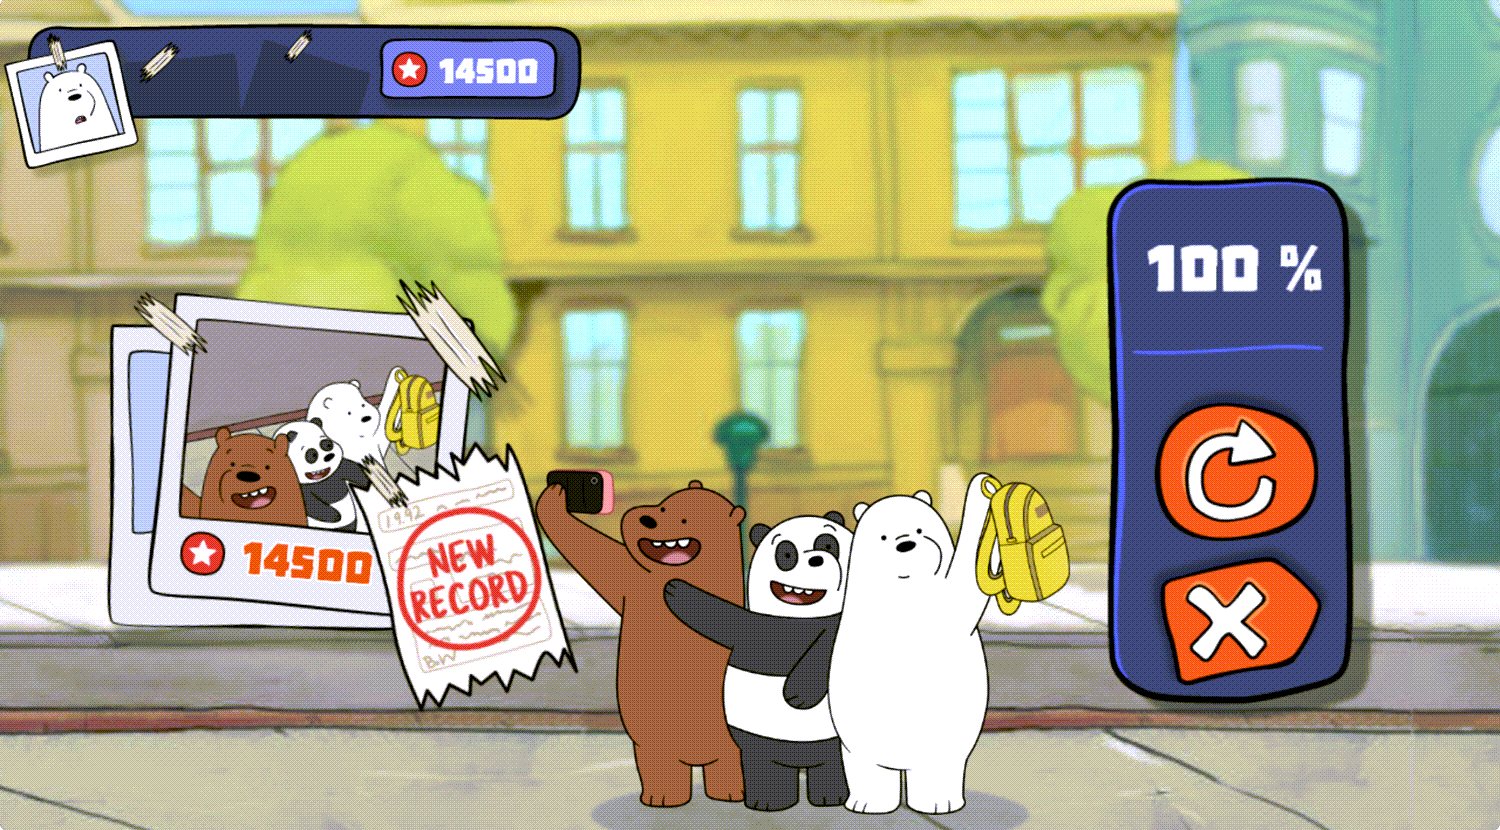 We Bare Bears Feathered Chase New Record Screenshot.